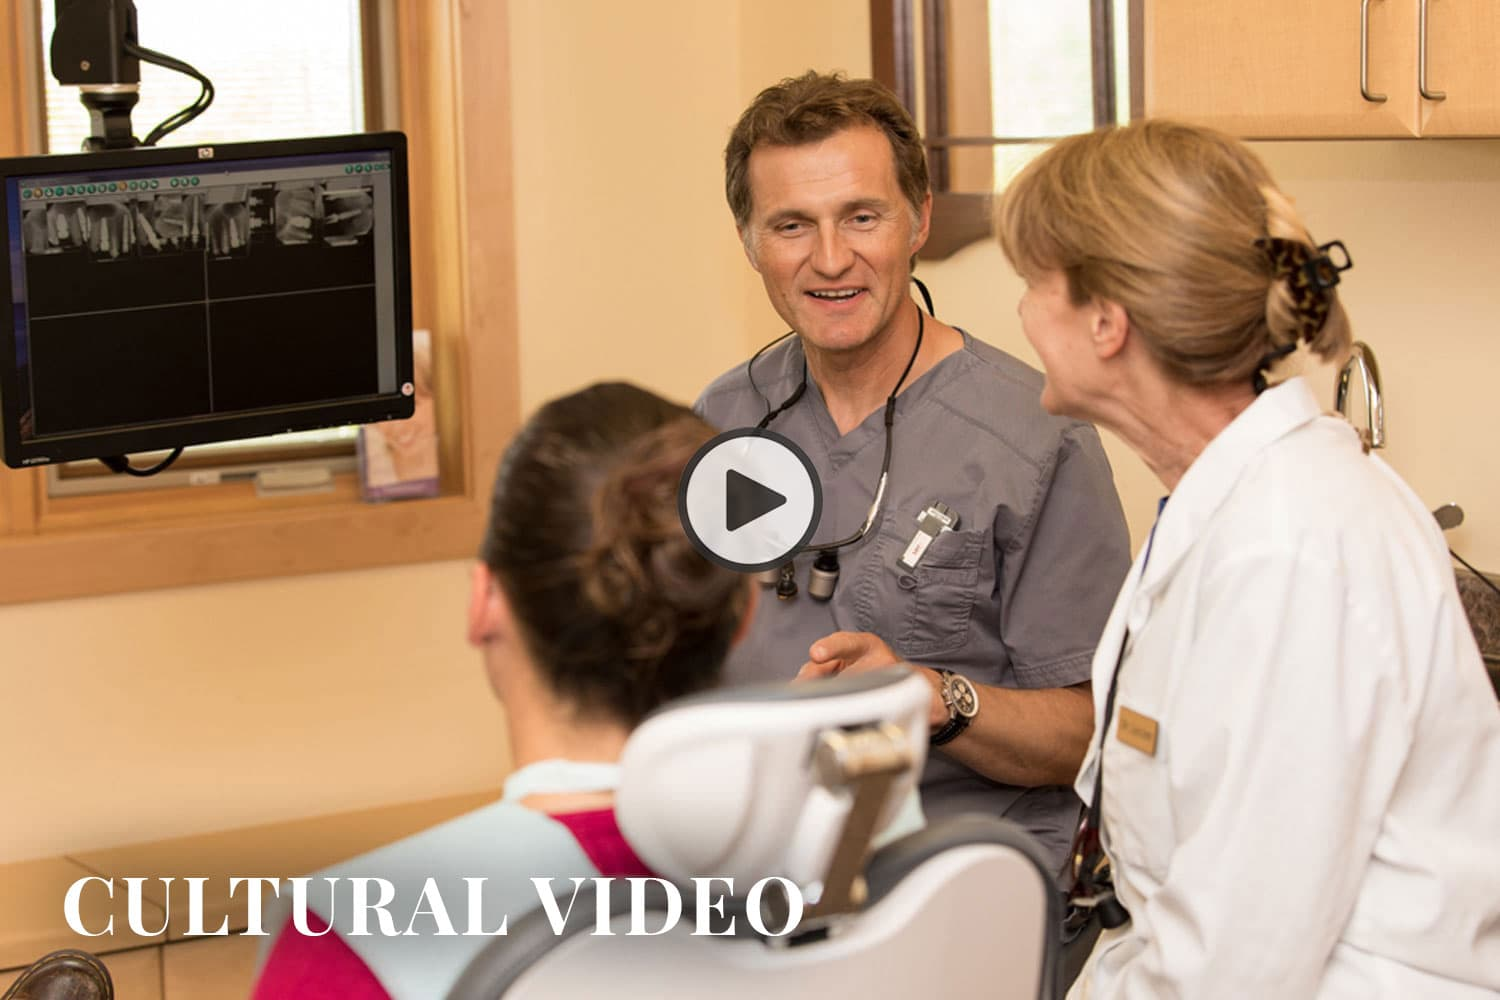 Dental Visions Cultural Video